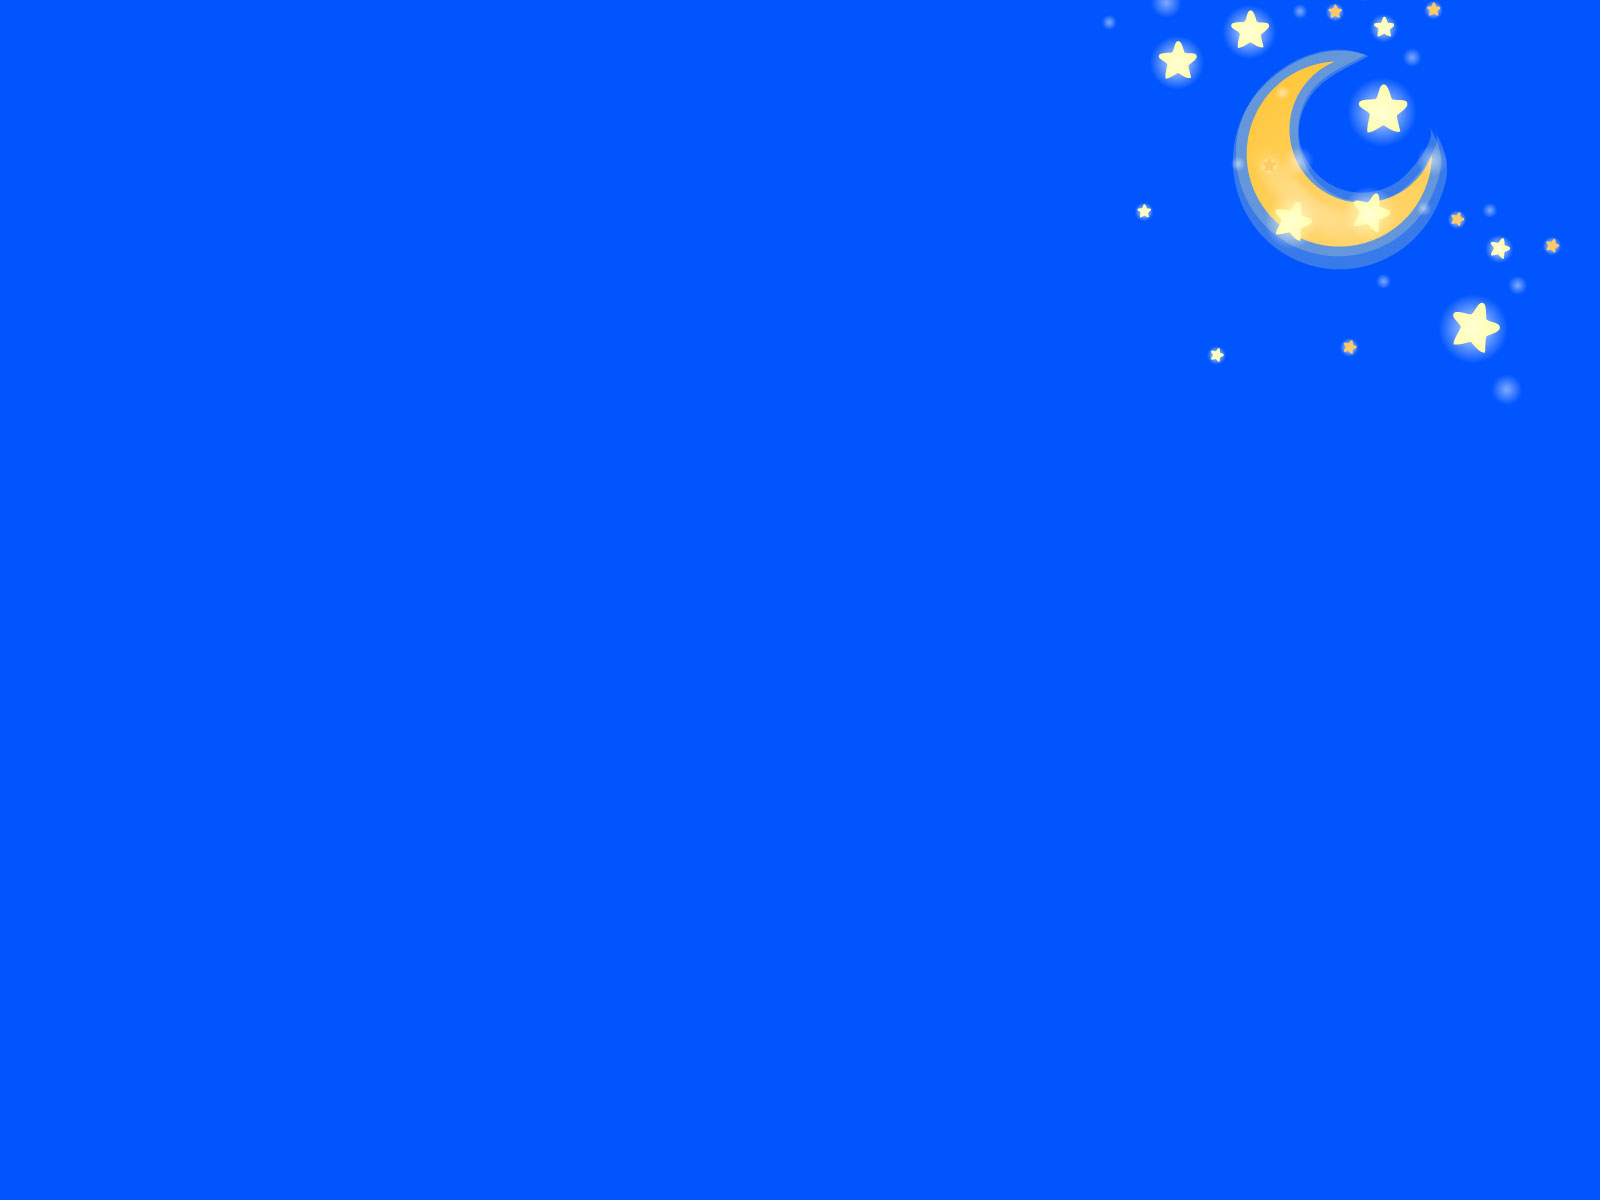 Stars Moon PPT Backgrounds